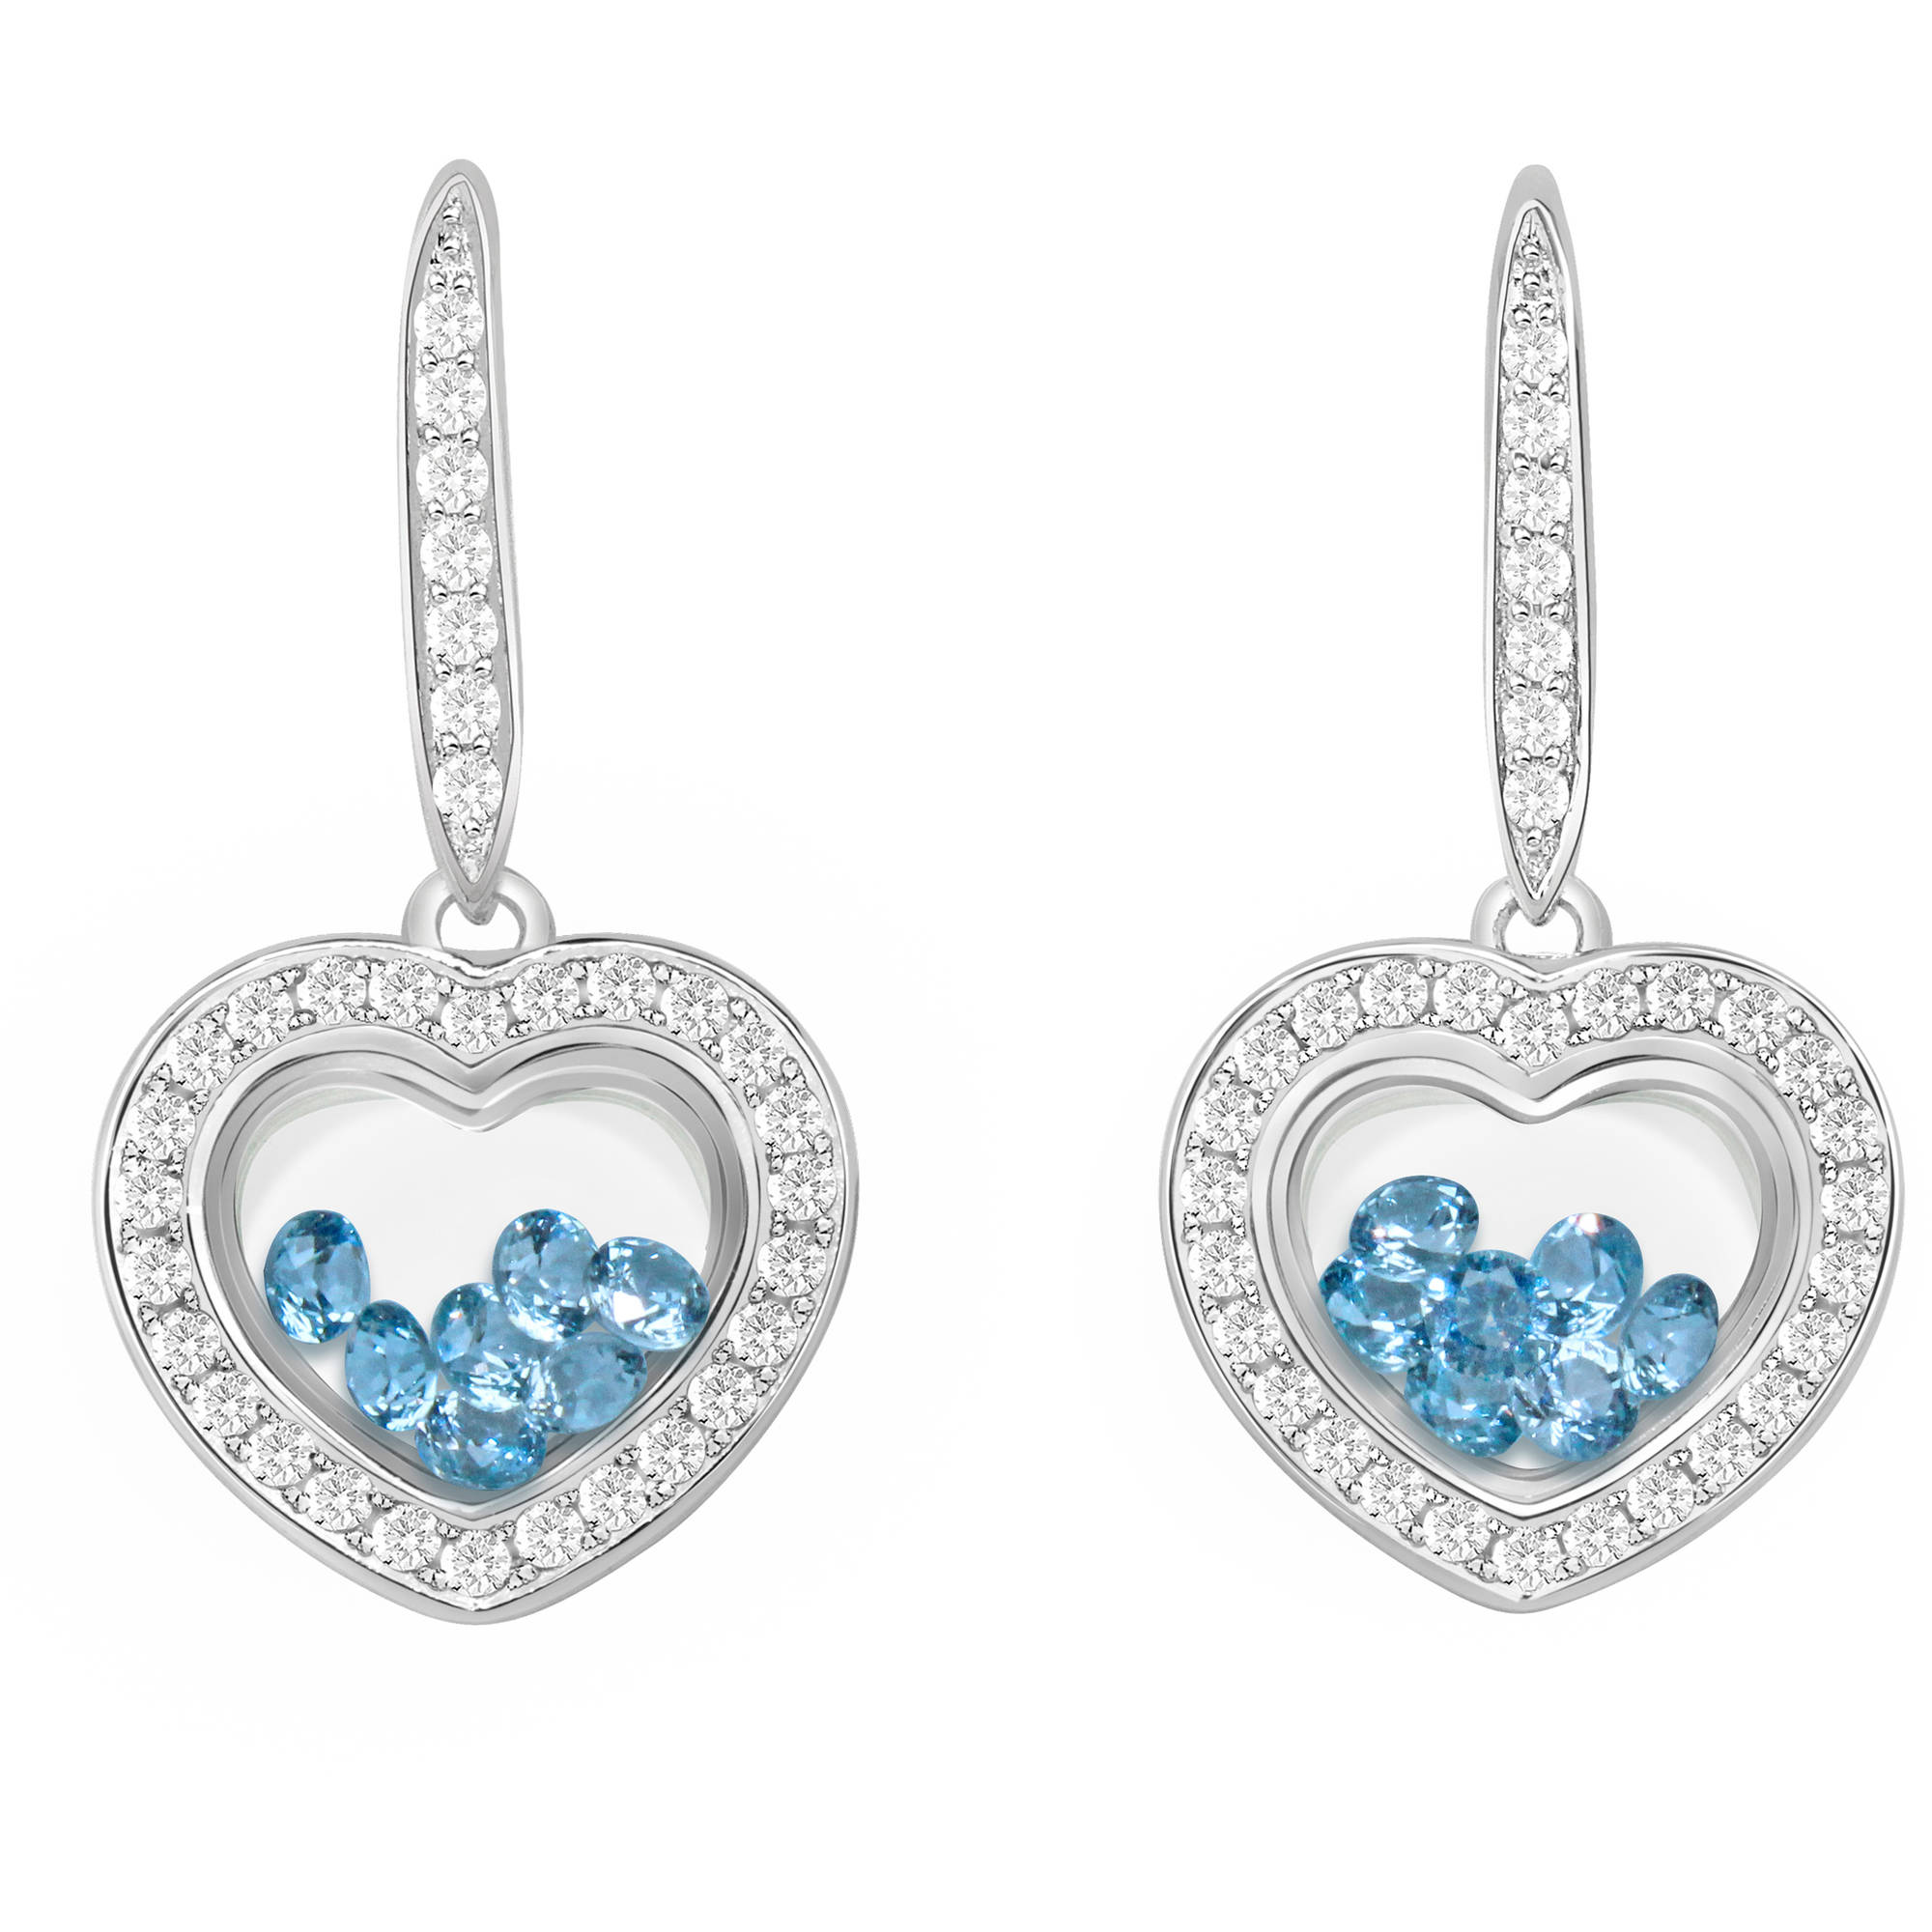 Chetan Collection Floating Light Blue CZ Sterling Silver Designer Heart-Shape Earrings